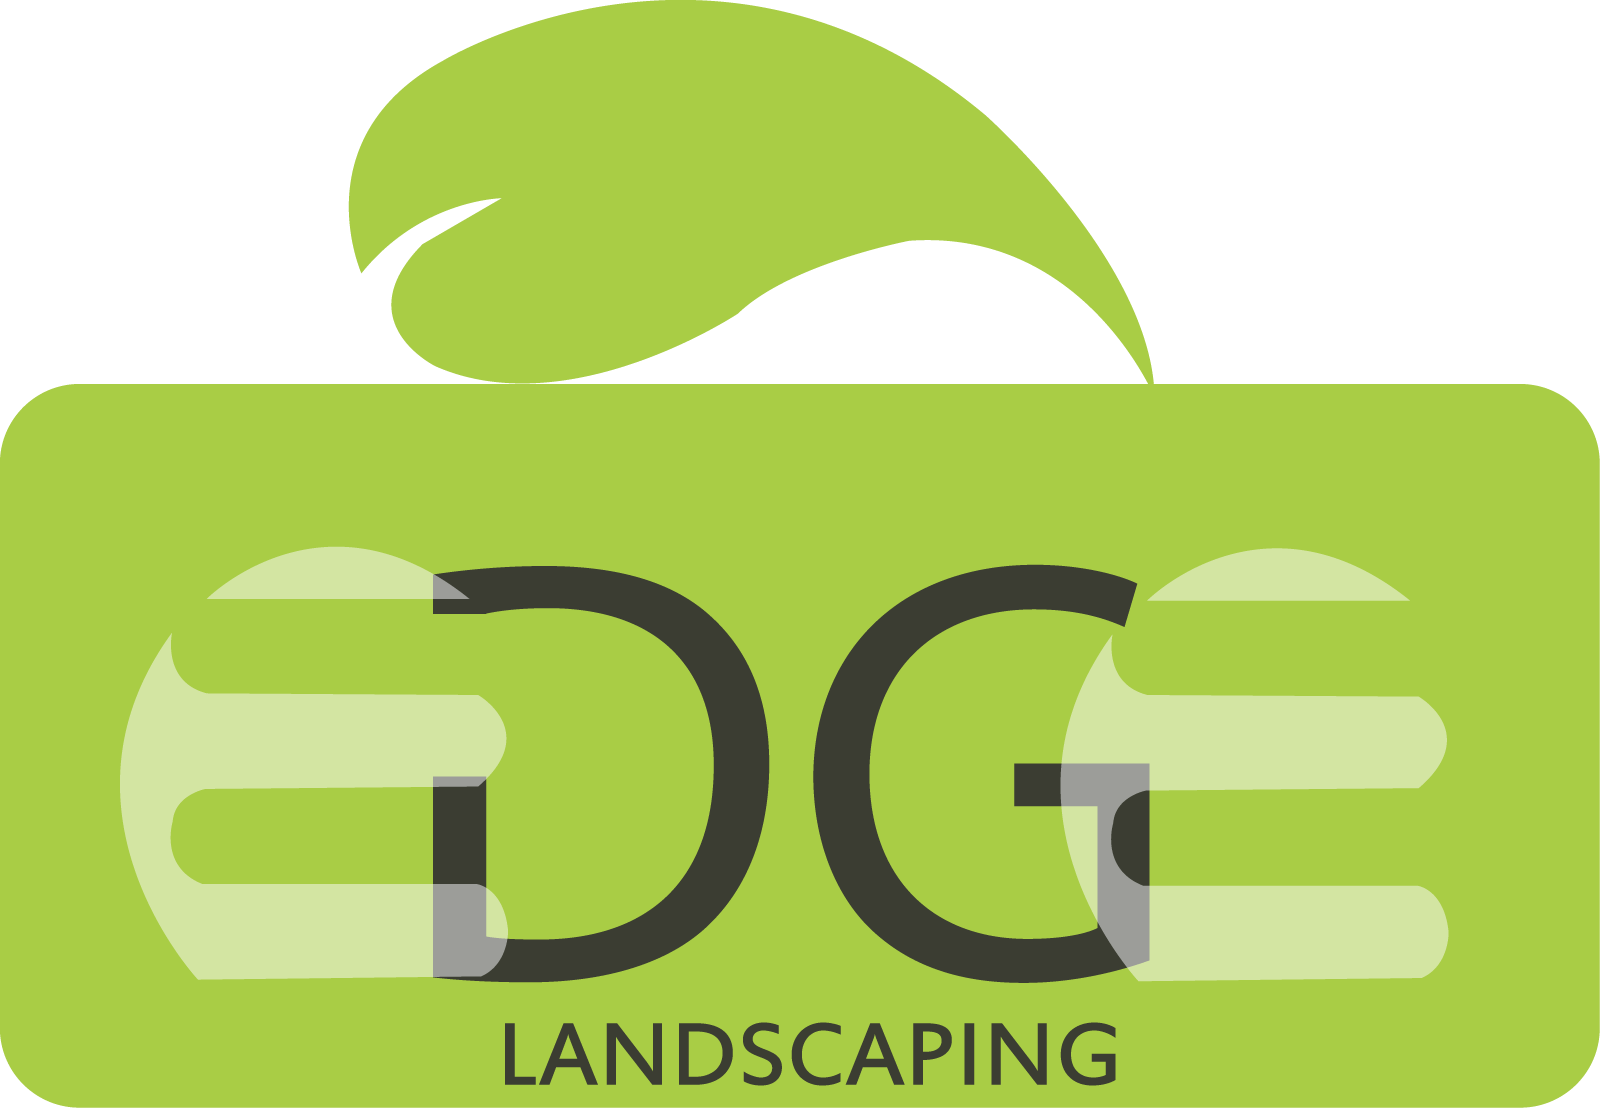 Logo Design by Saqib Hashmi - Entry No. 171 in the Logo Design Contest Inspiring Logo Design for Edge Landscaping.